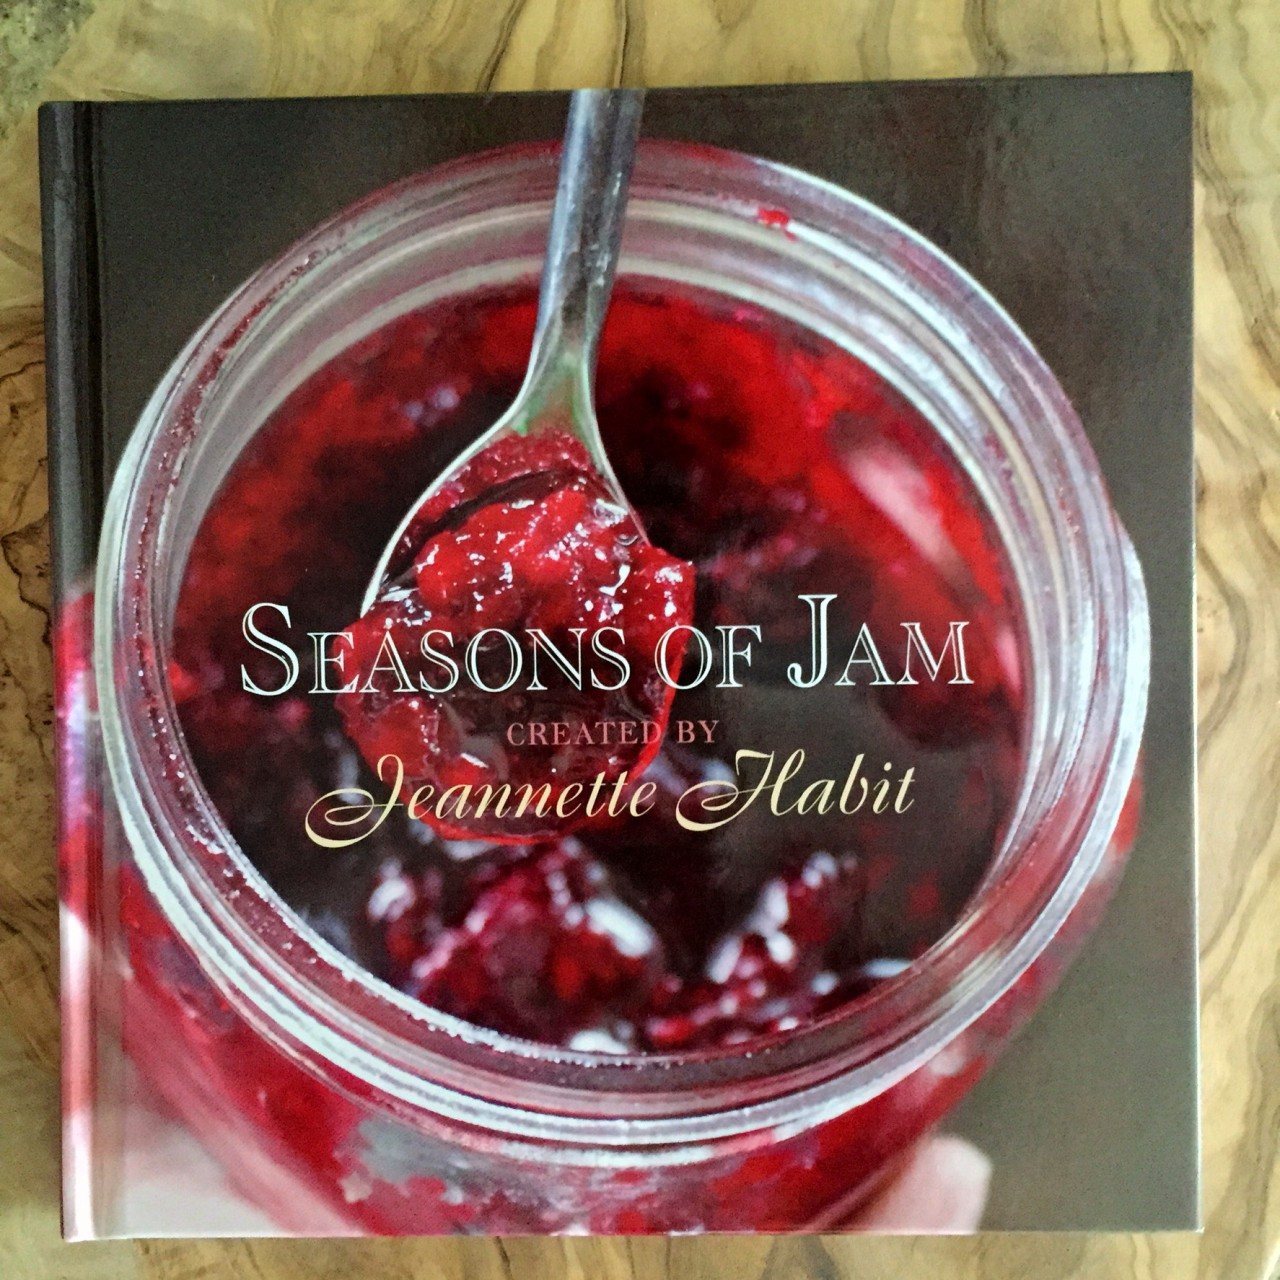 Seasons of Jam: My first book collaboration